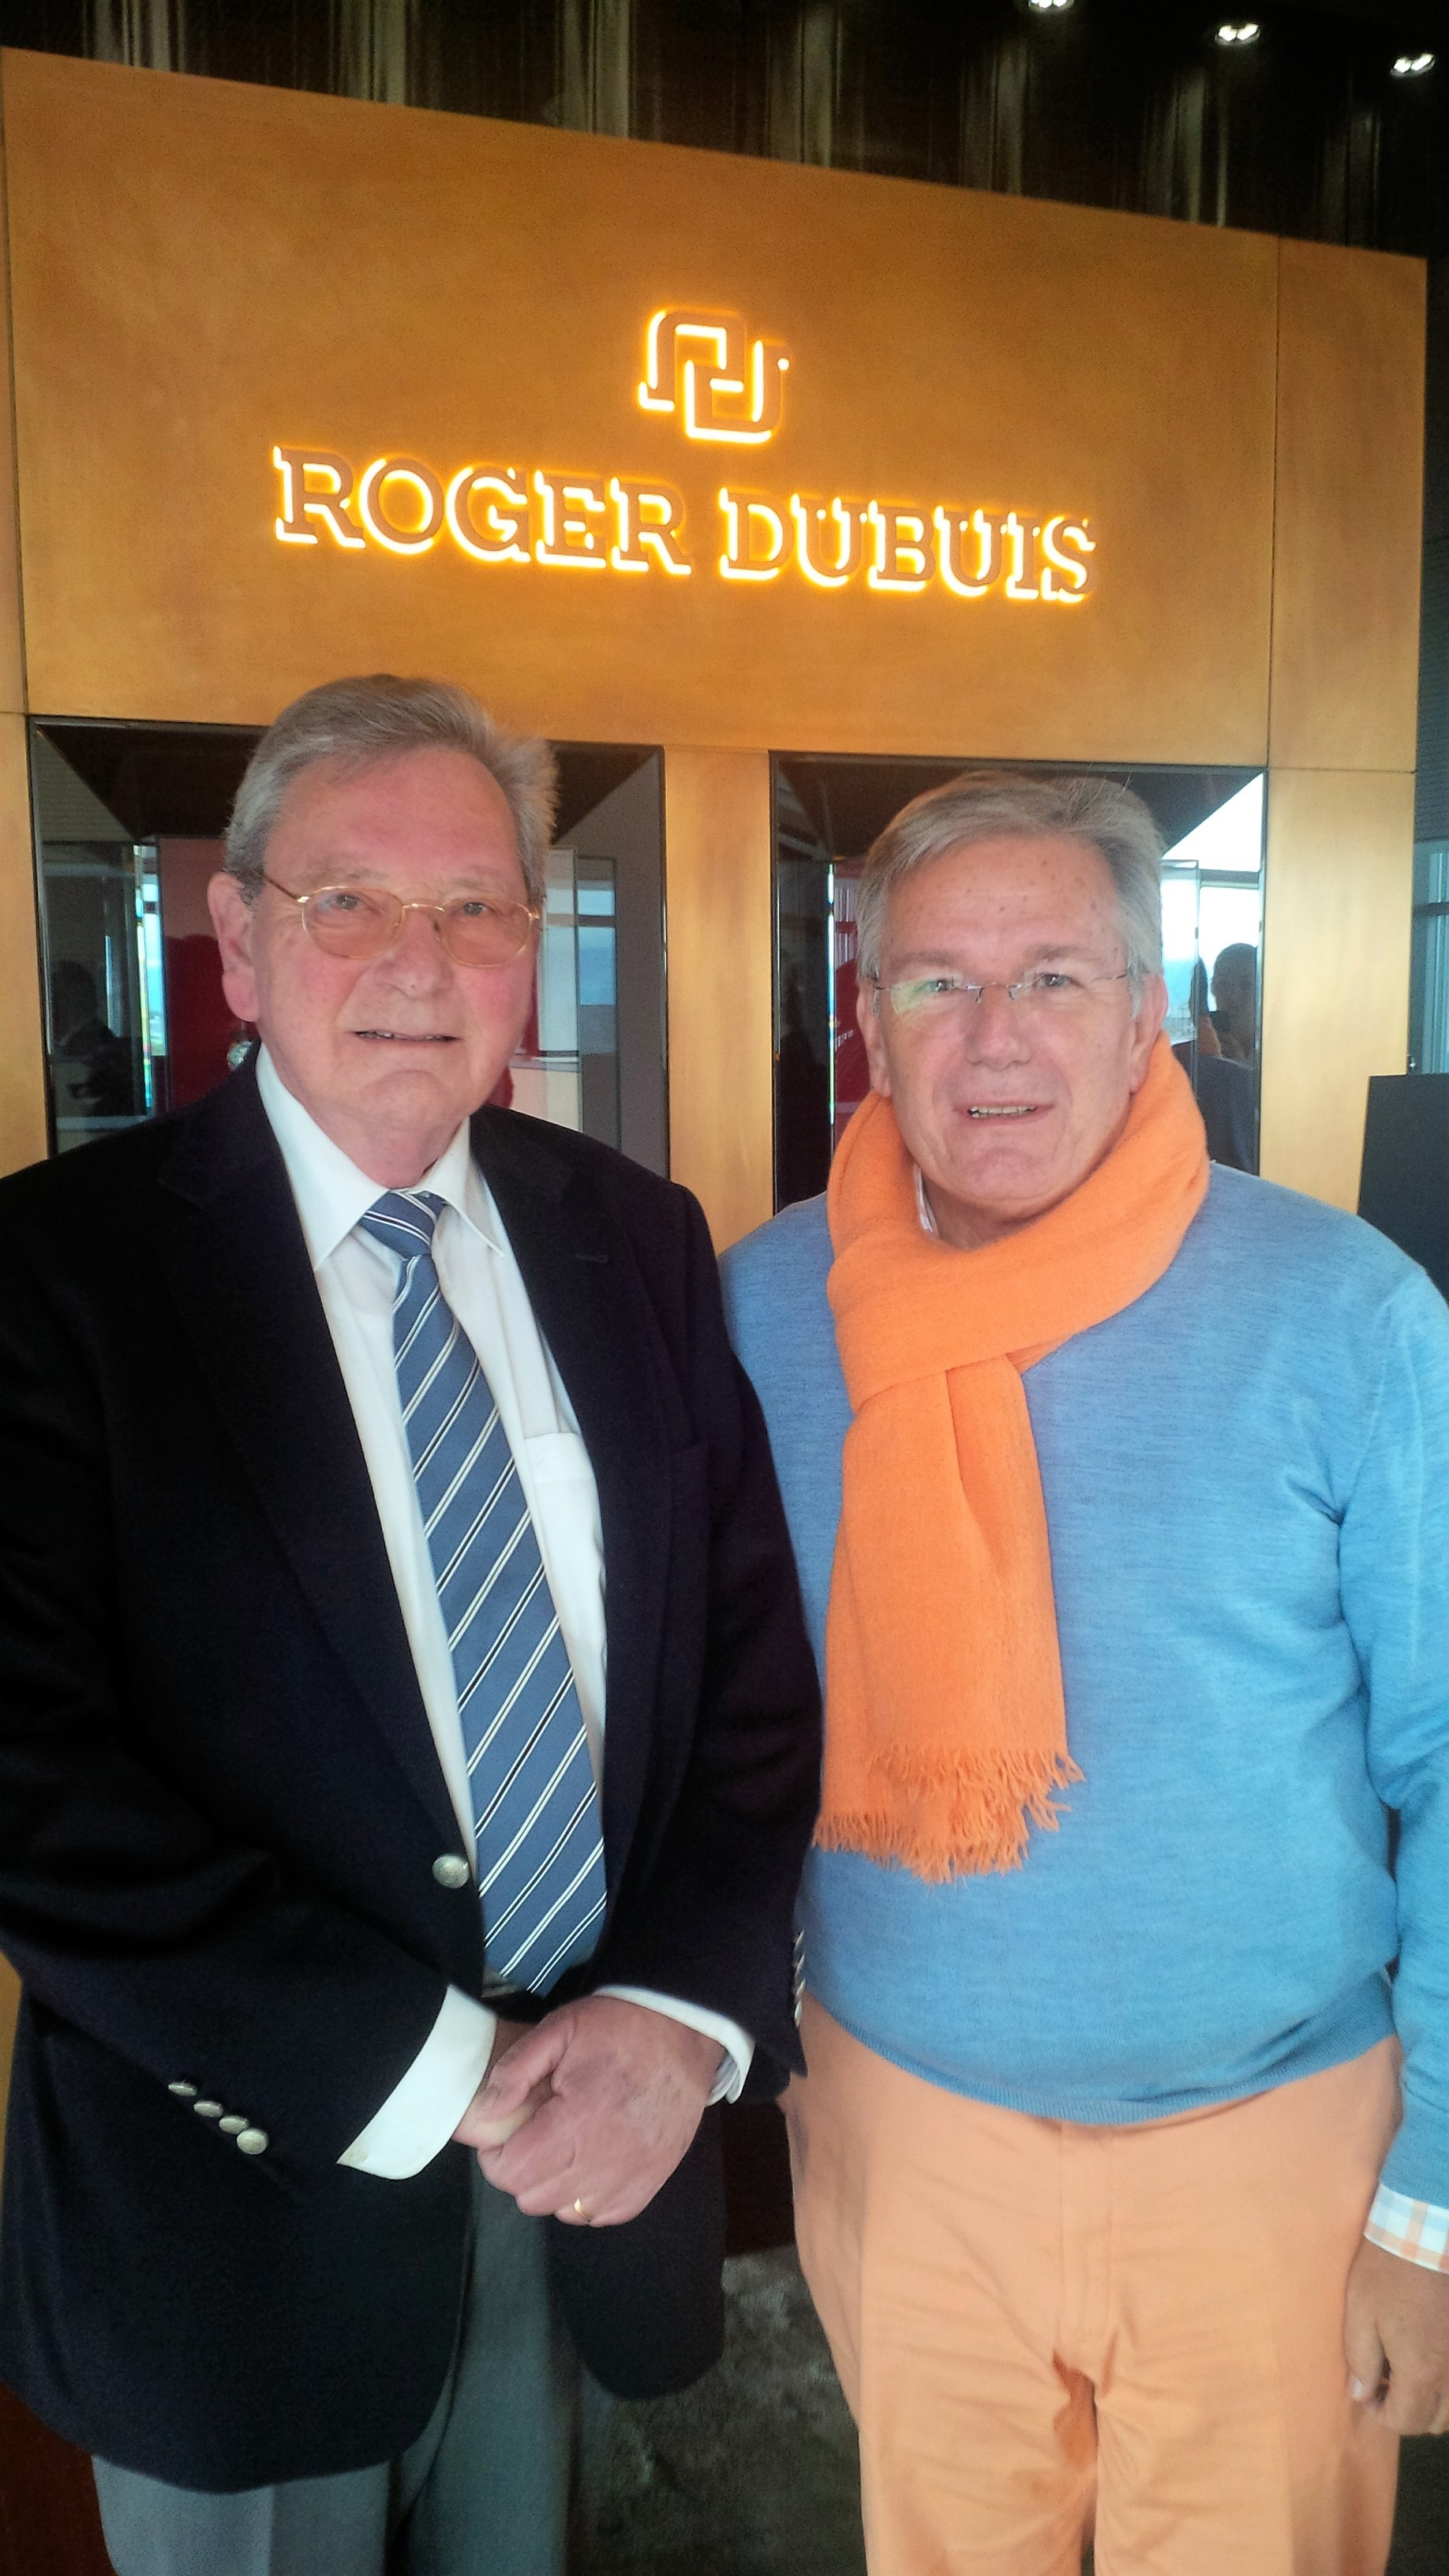 With Co-founder Roger Dubuis in Meyrin-Geneve, died in October 2017